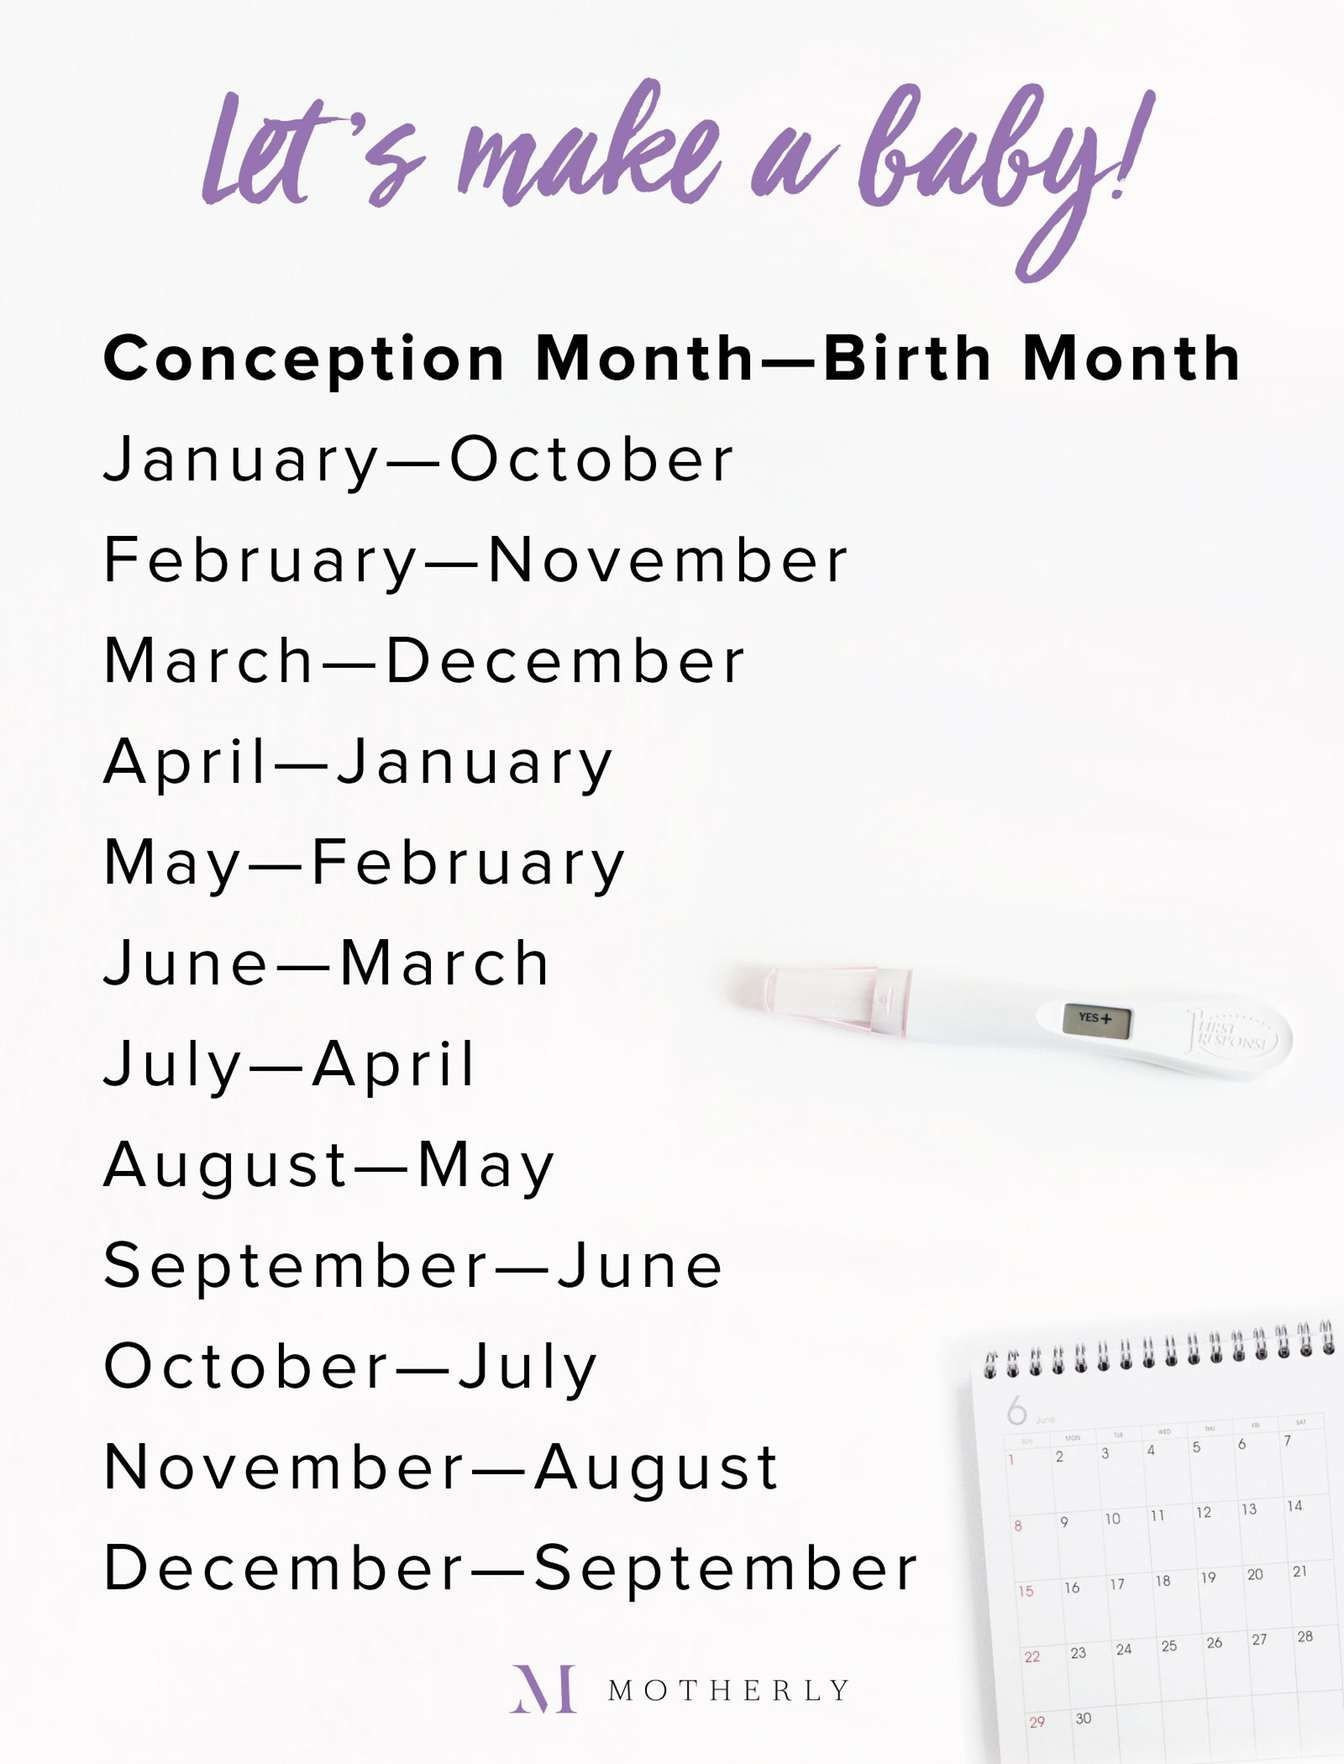 March Reading Month Calendar Activities Más Reciente What Month Will My Baby Be Born Due Date Graphic Calculator Of March Reading Month Calendar Activities Más Caliente Calendar Of events